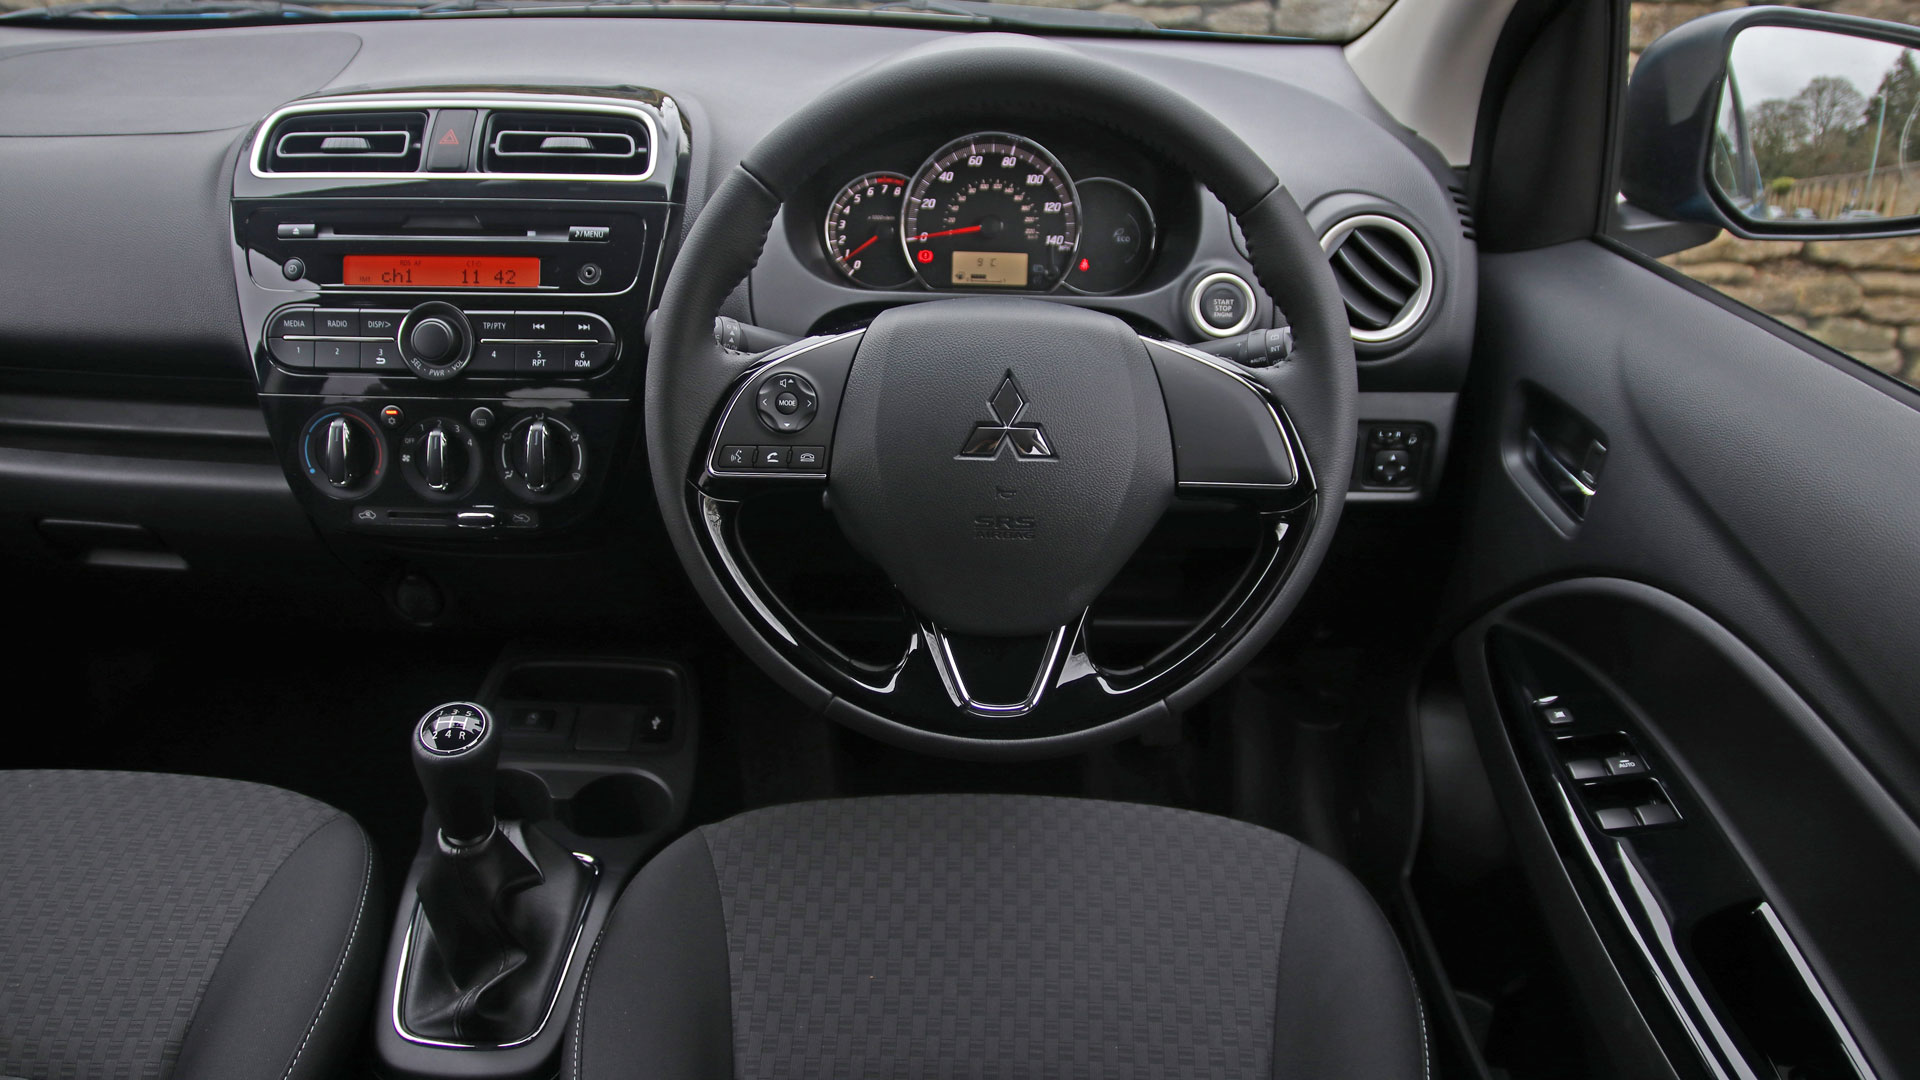 2019 Mitsubishi Mirage interior